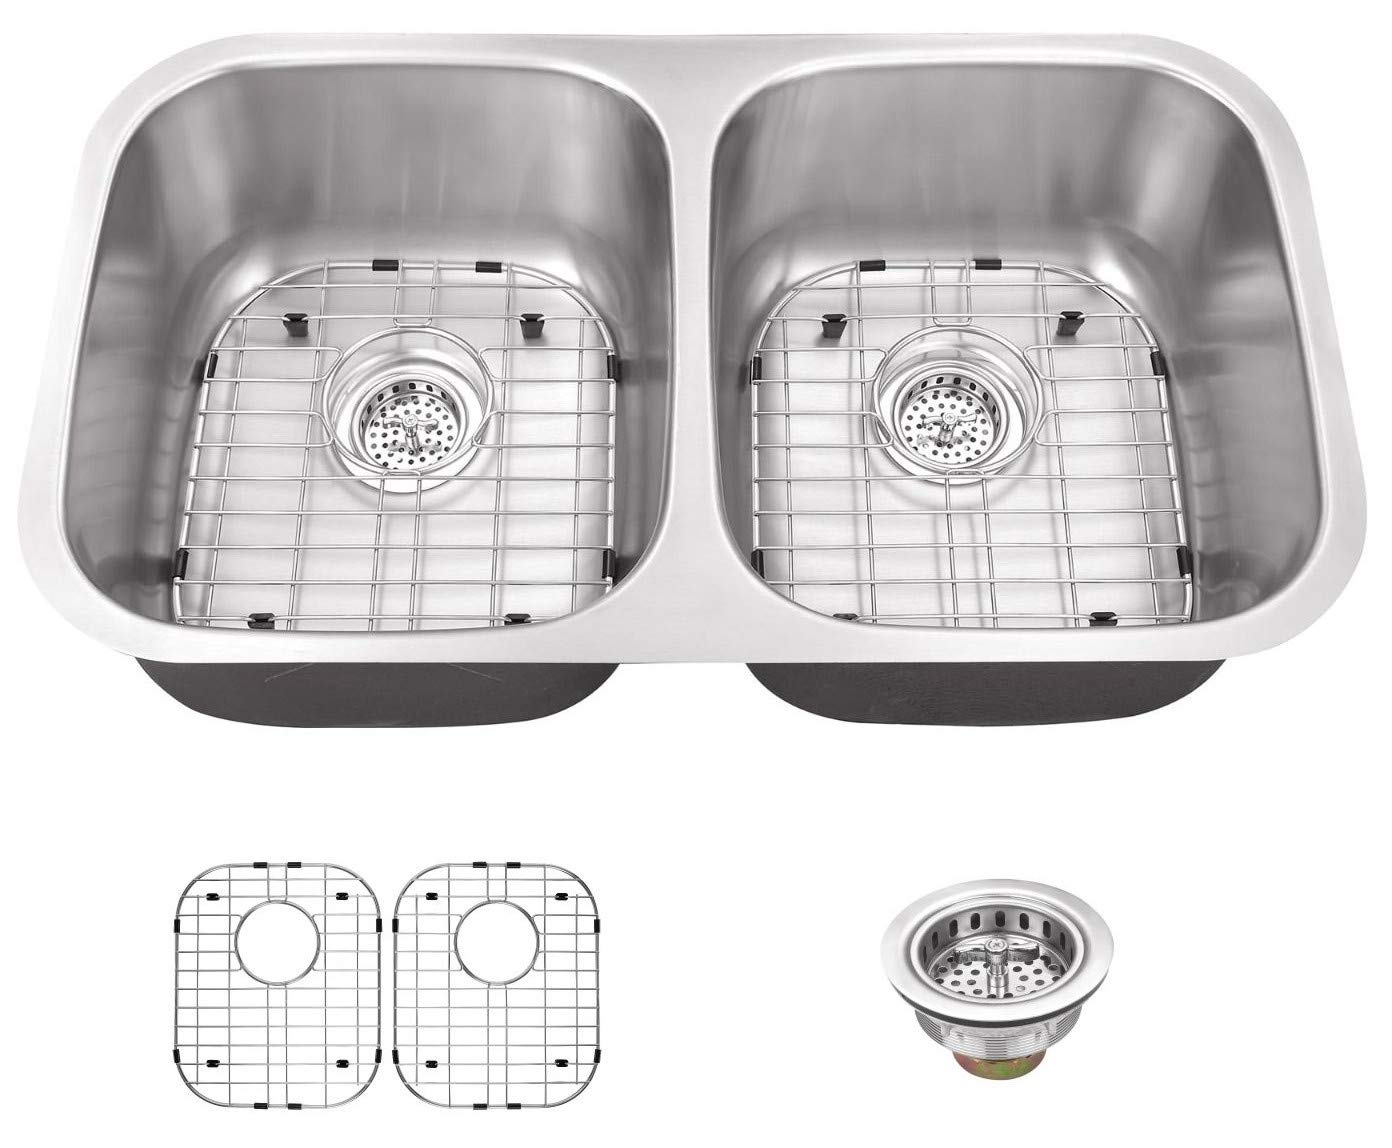 Miseno MSS2918C 29-1 8 Undermount Double Basin Stainless Steel Kitchen Sink with 50 50 Split – Drain Assemblies, Basin Racks and Maintenance Kit Included